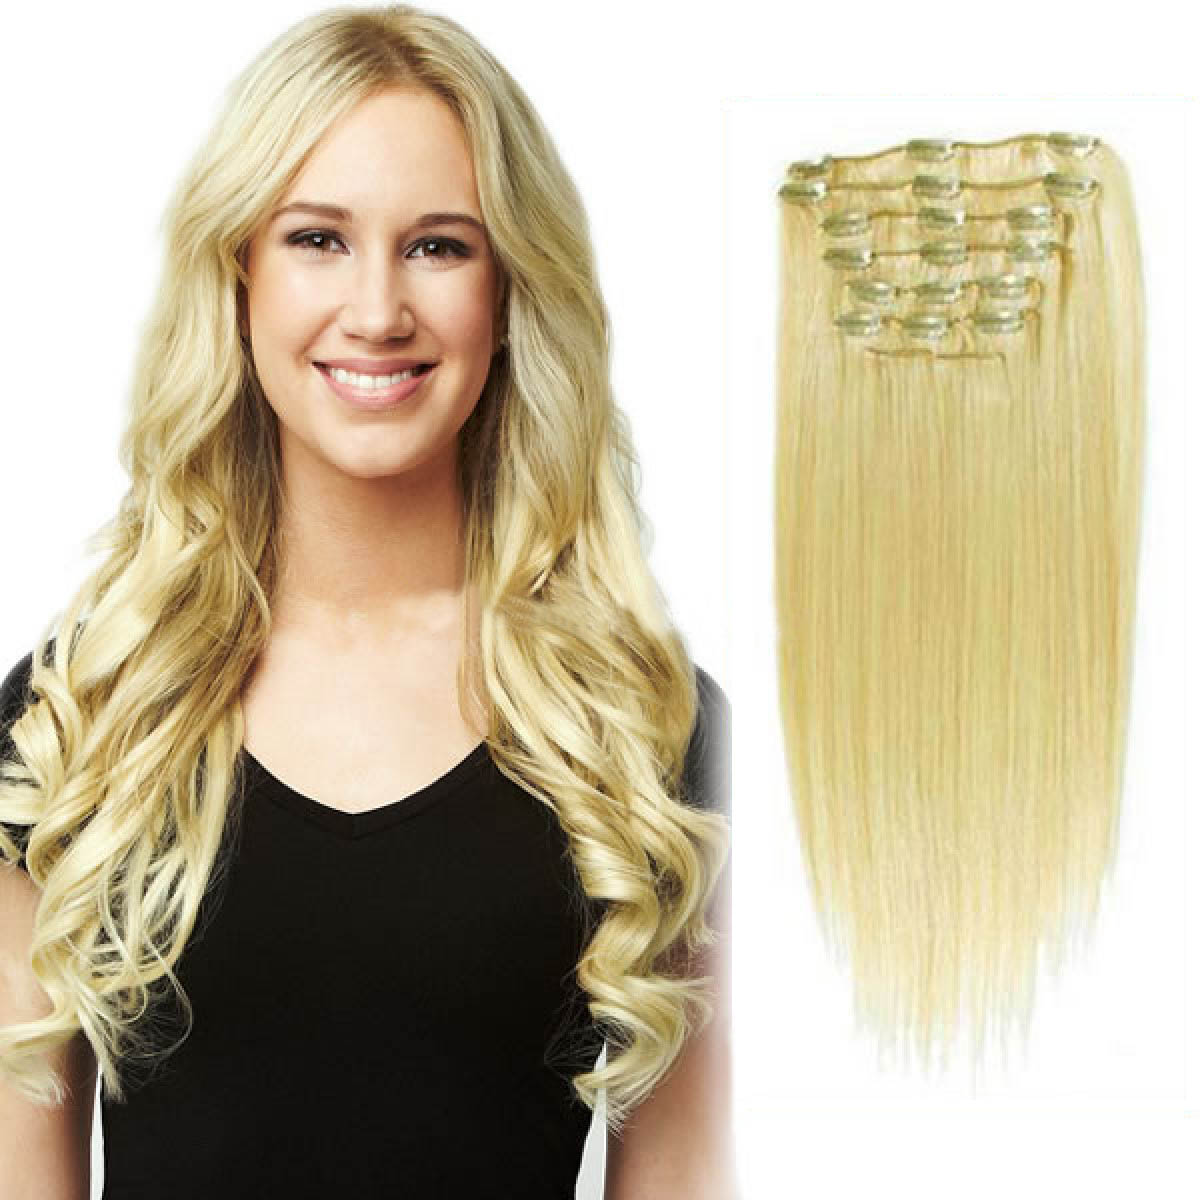 Straight perm for thick hair - Straight Perm Uk Perm Straight Hair Extensions 32 Inch 613 Bleach Blonde Clip In Human